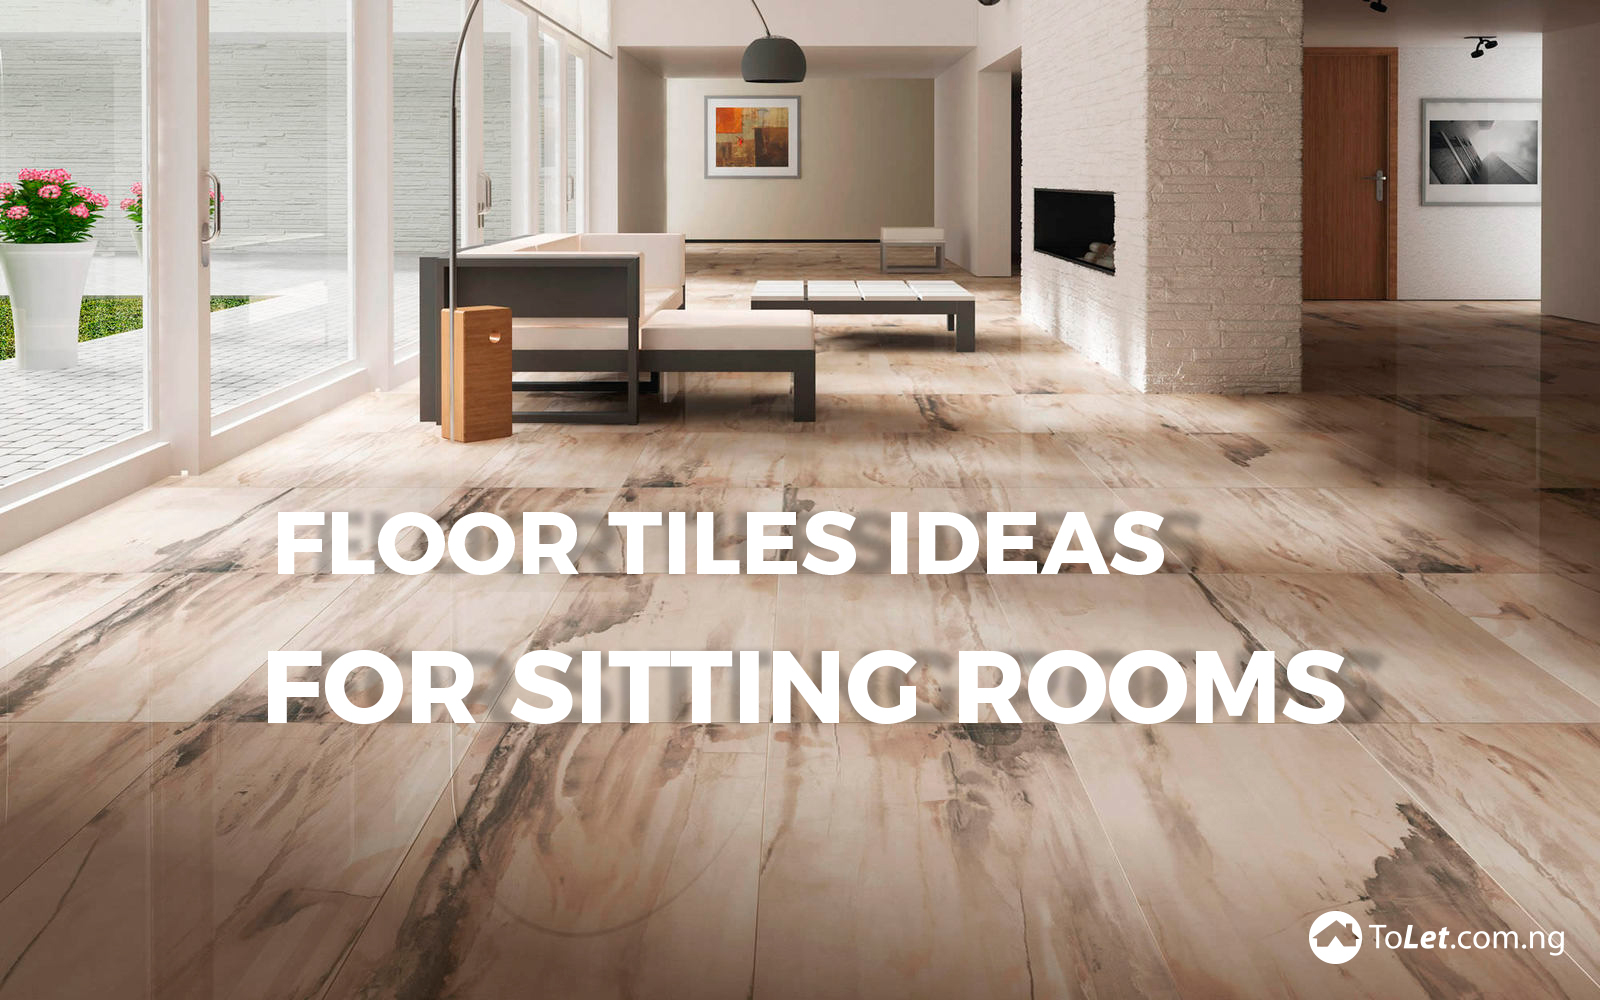 Floor tiles ideas for sitting rooms propertypro insider